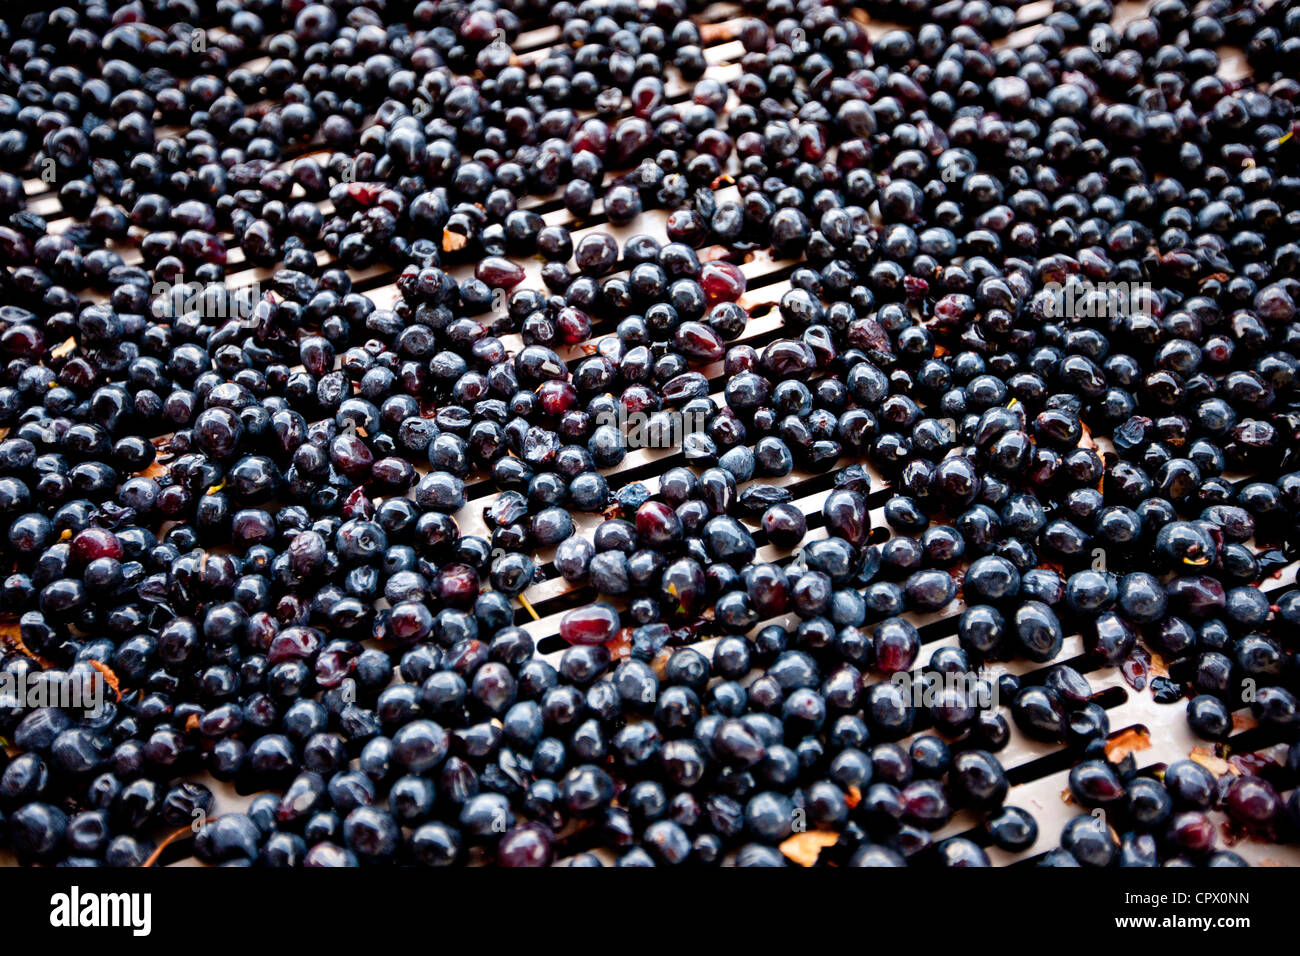 Ripe Brunello grapes, Sangiovese, sorted on conveyor belt at wine estate La Fornace at Montalcino in Val D'Orcia, - Stock Image